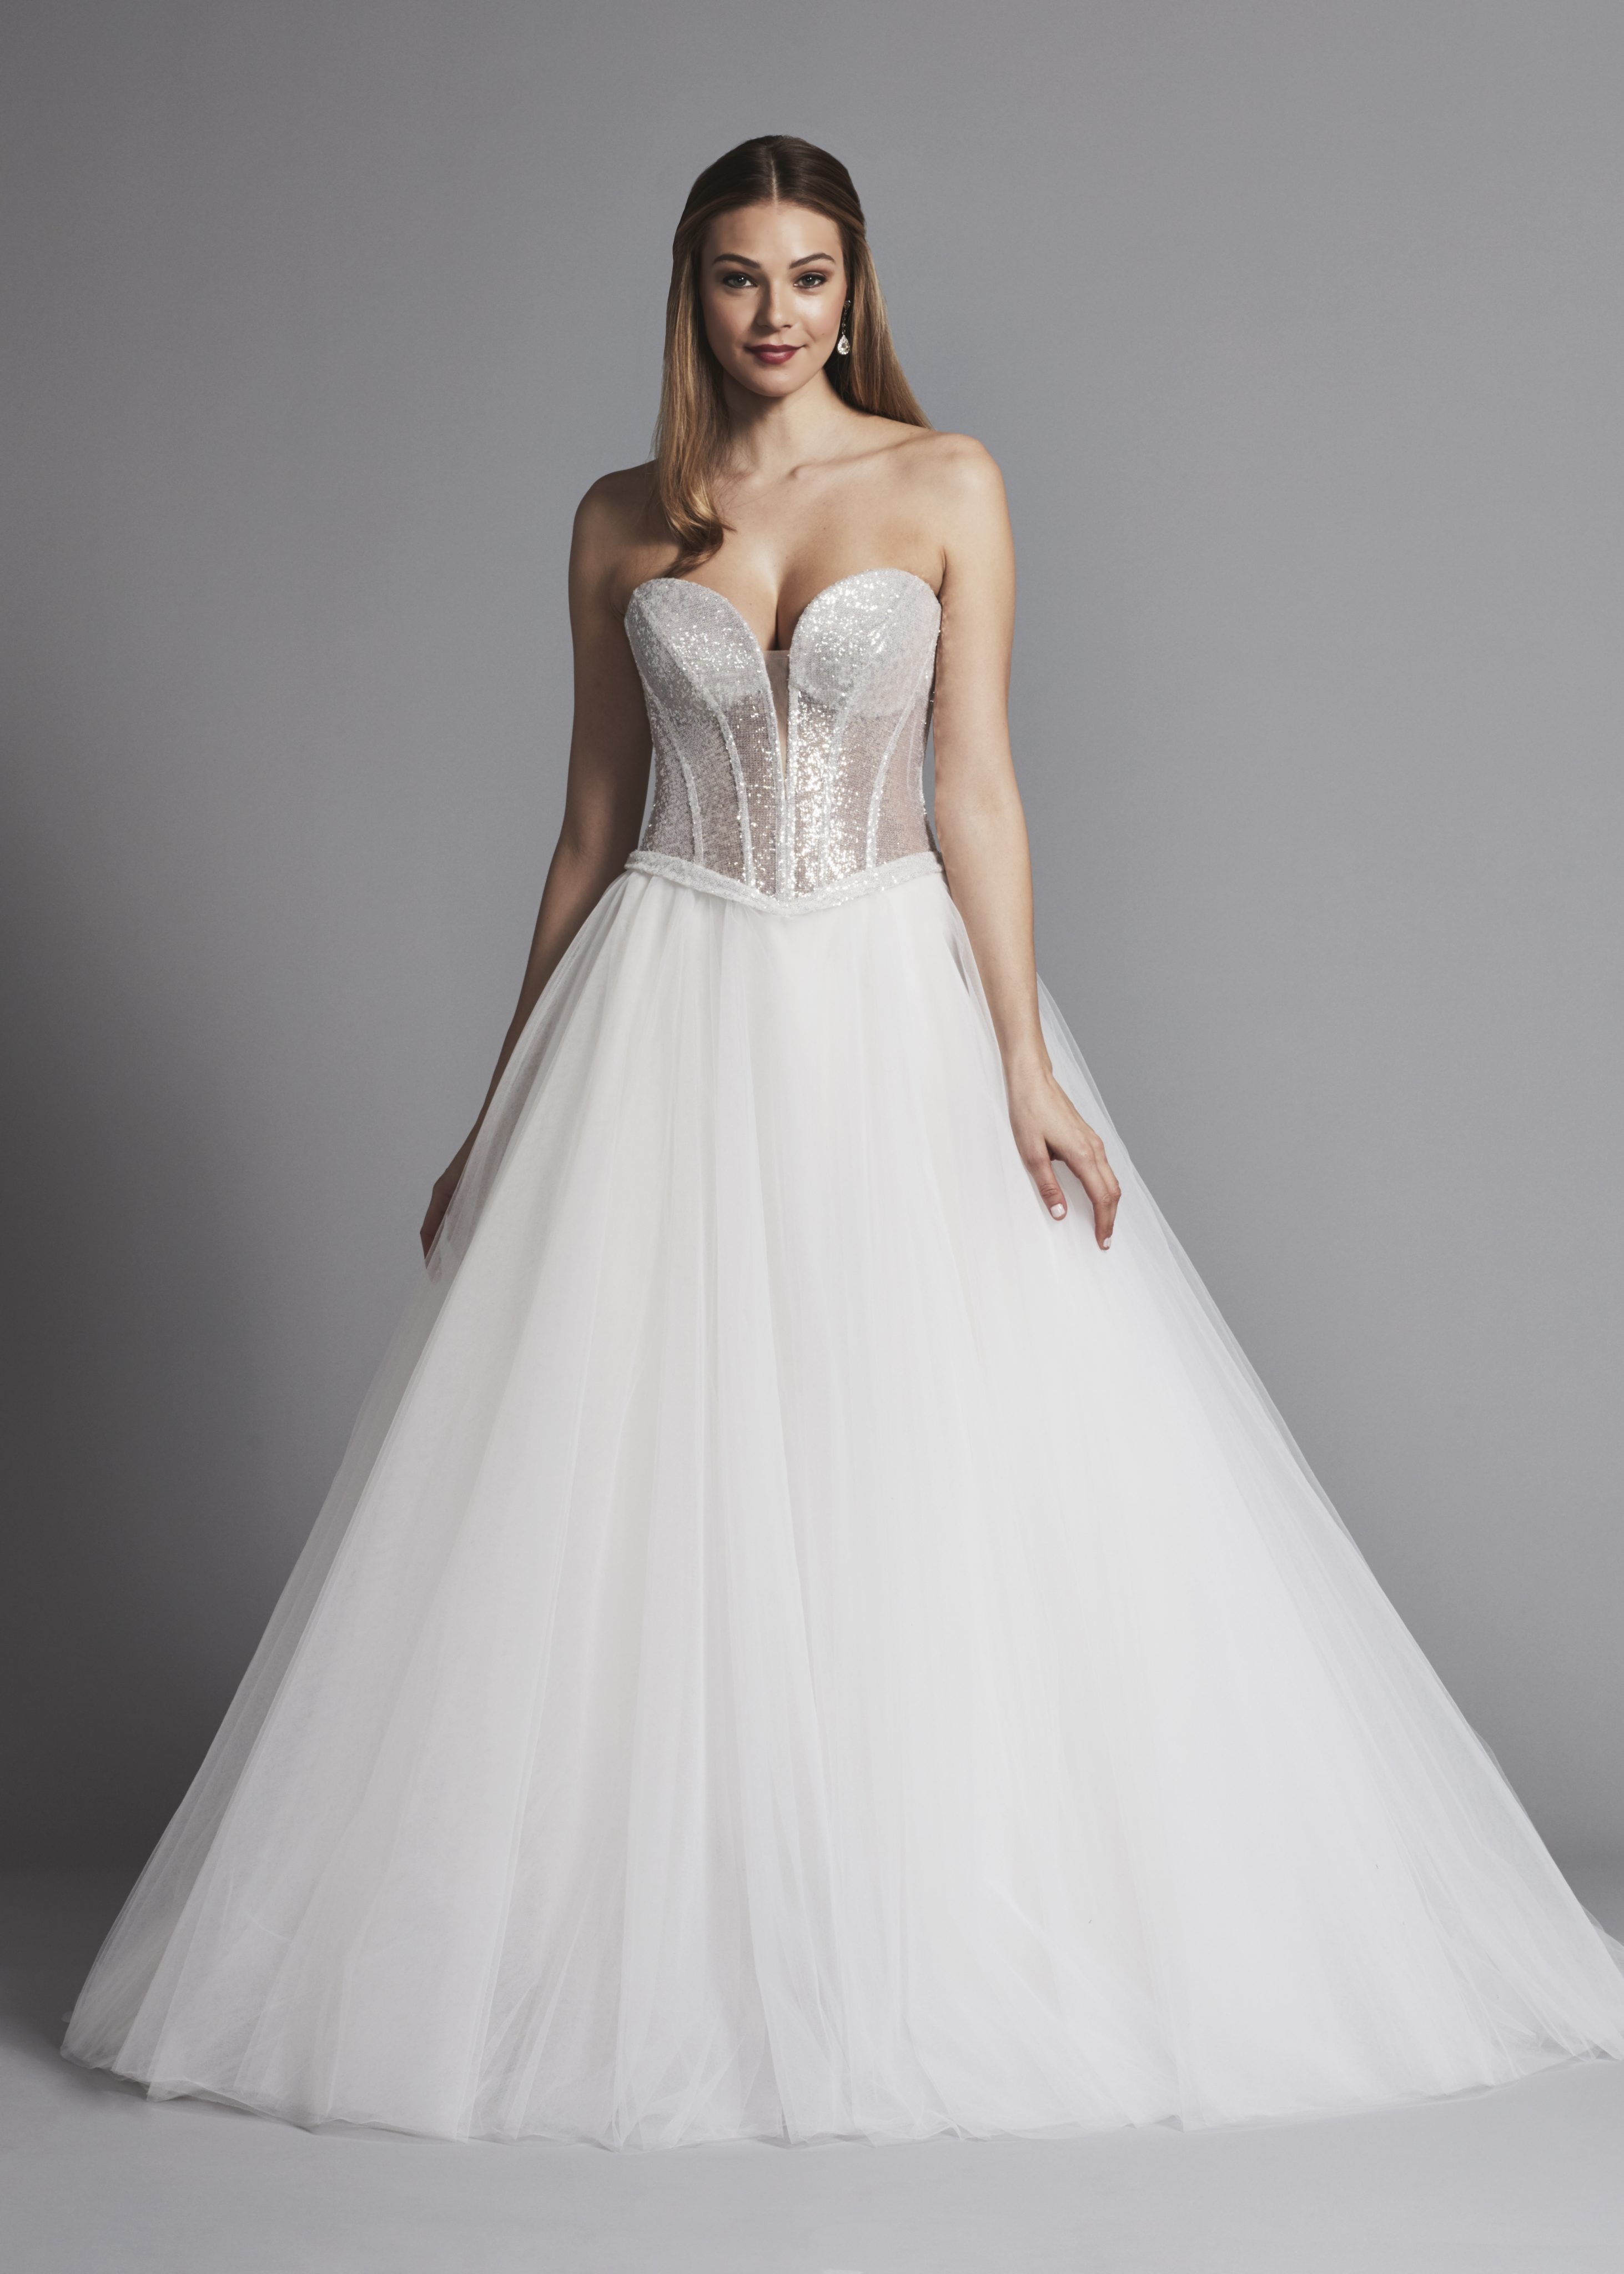 Glitter Strapless Ball Gown Wedding Dress With Corset Bodice And